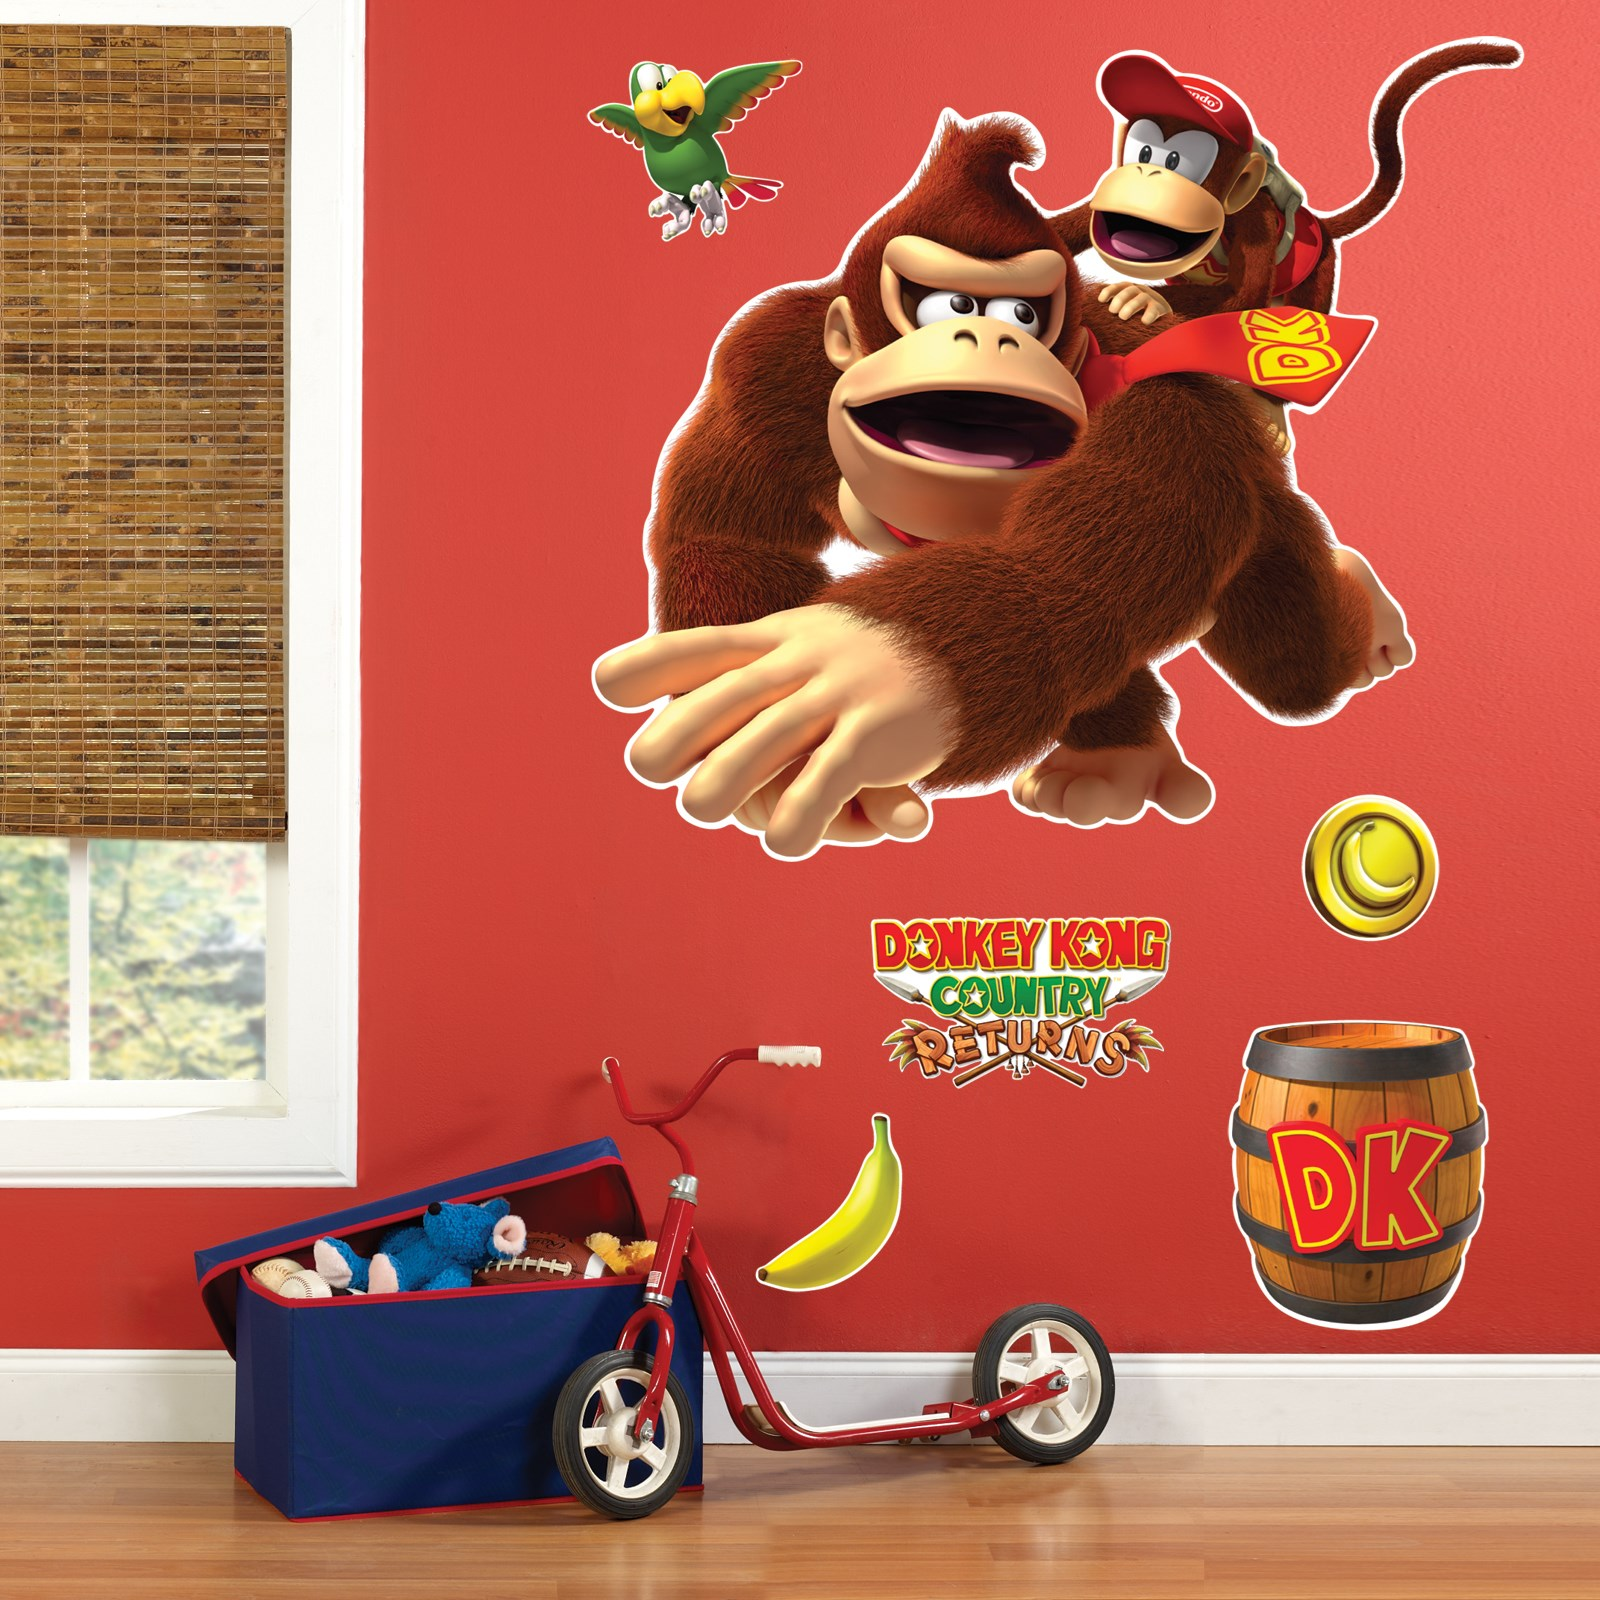 Donkey Kong Giant Wall Decals